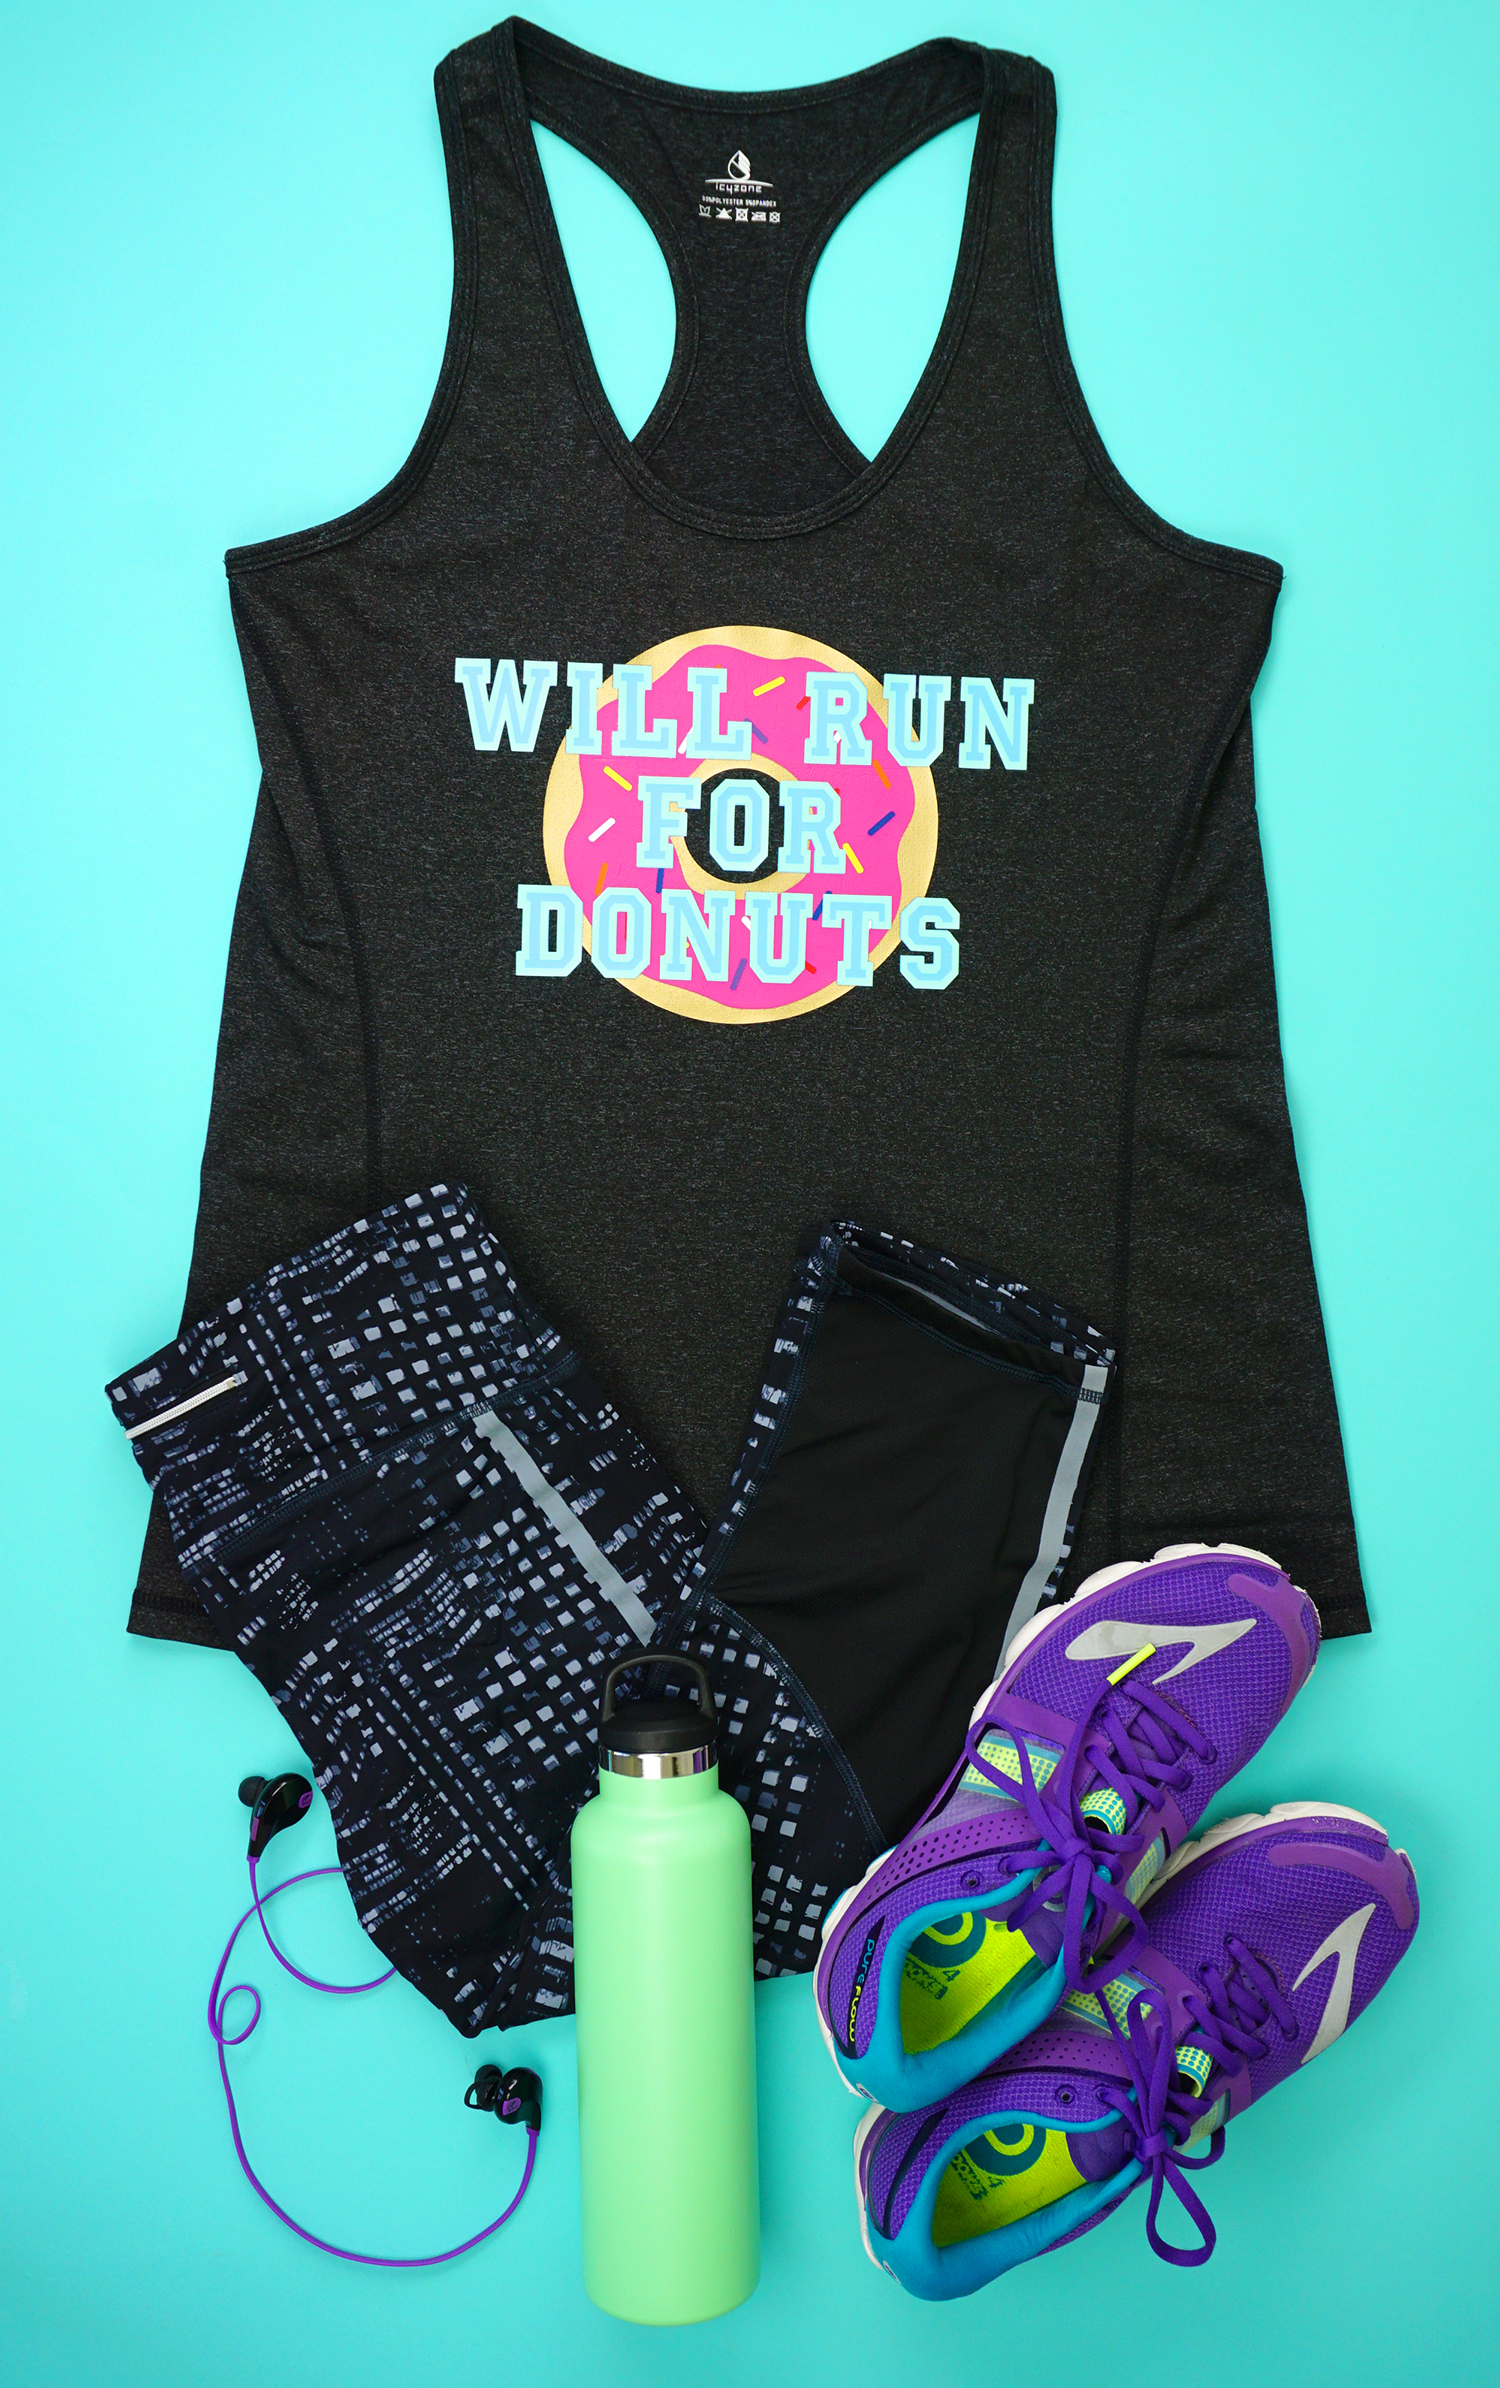 Funny Workout Shirt Quot Will Run For Donuts Quot With Cricut Sportflex Iron On Happiness Is Homemade